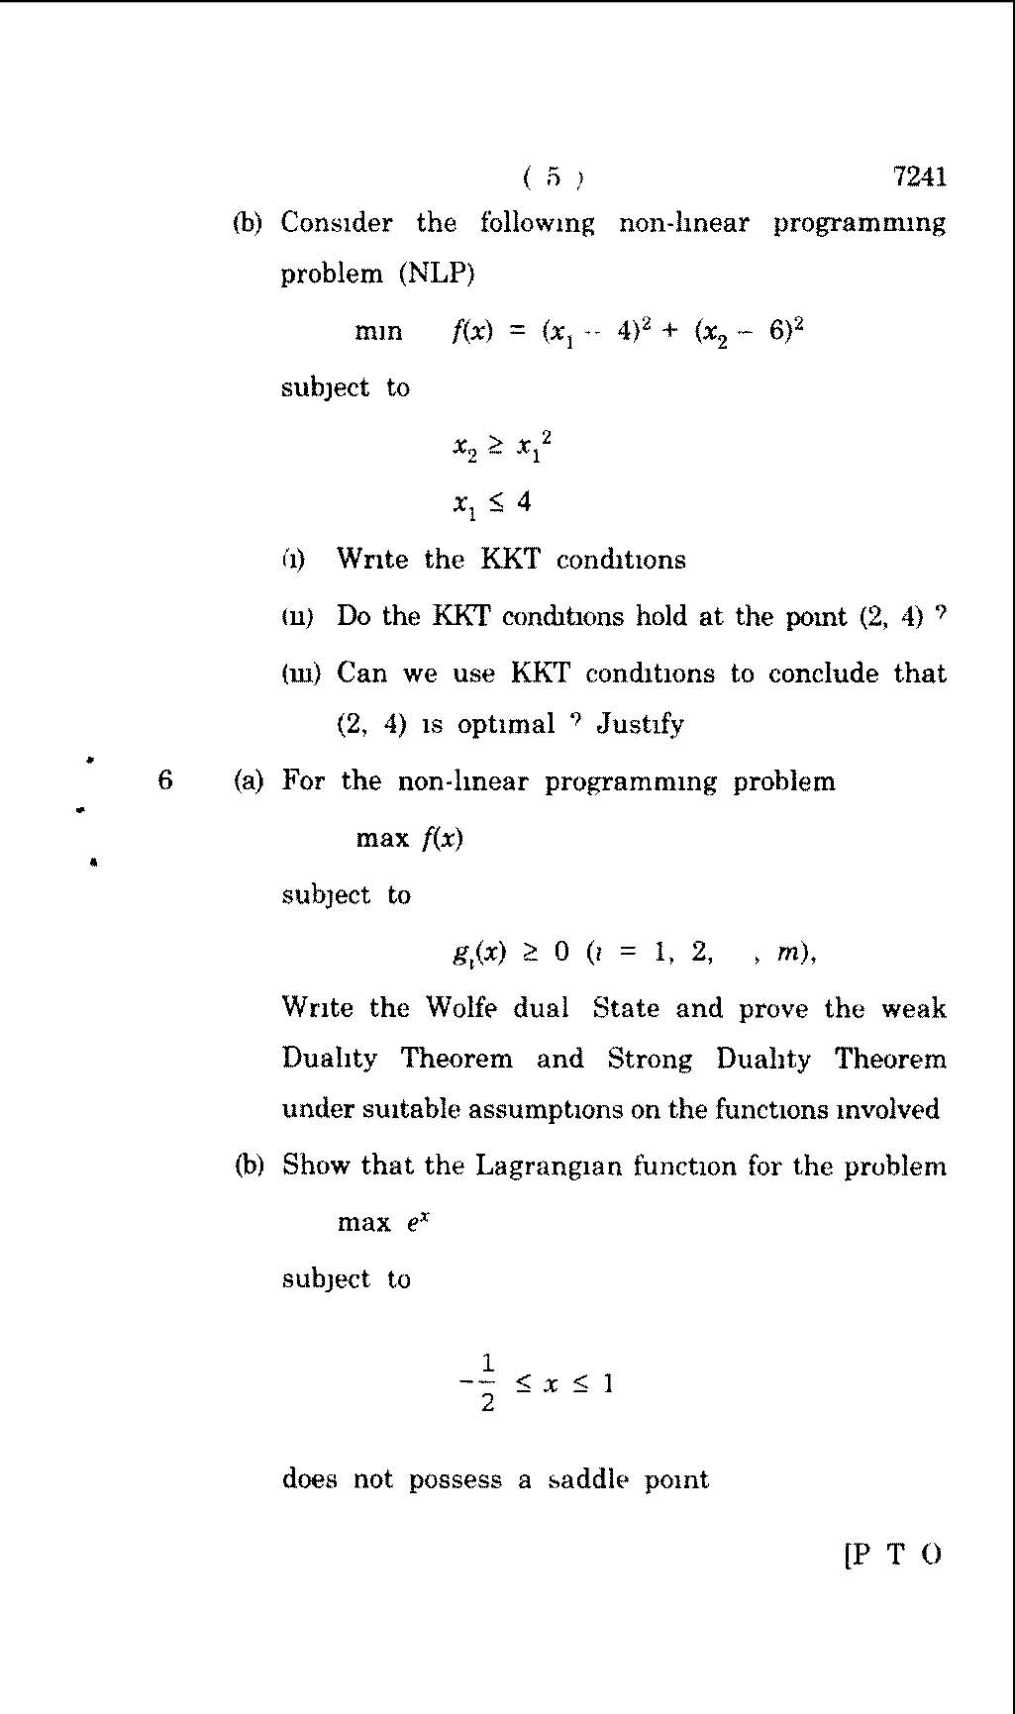 Operations research test questions